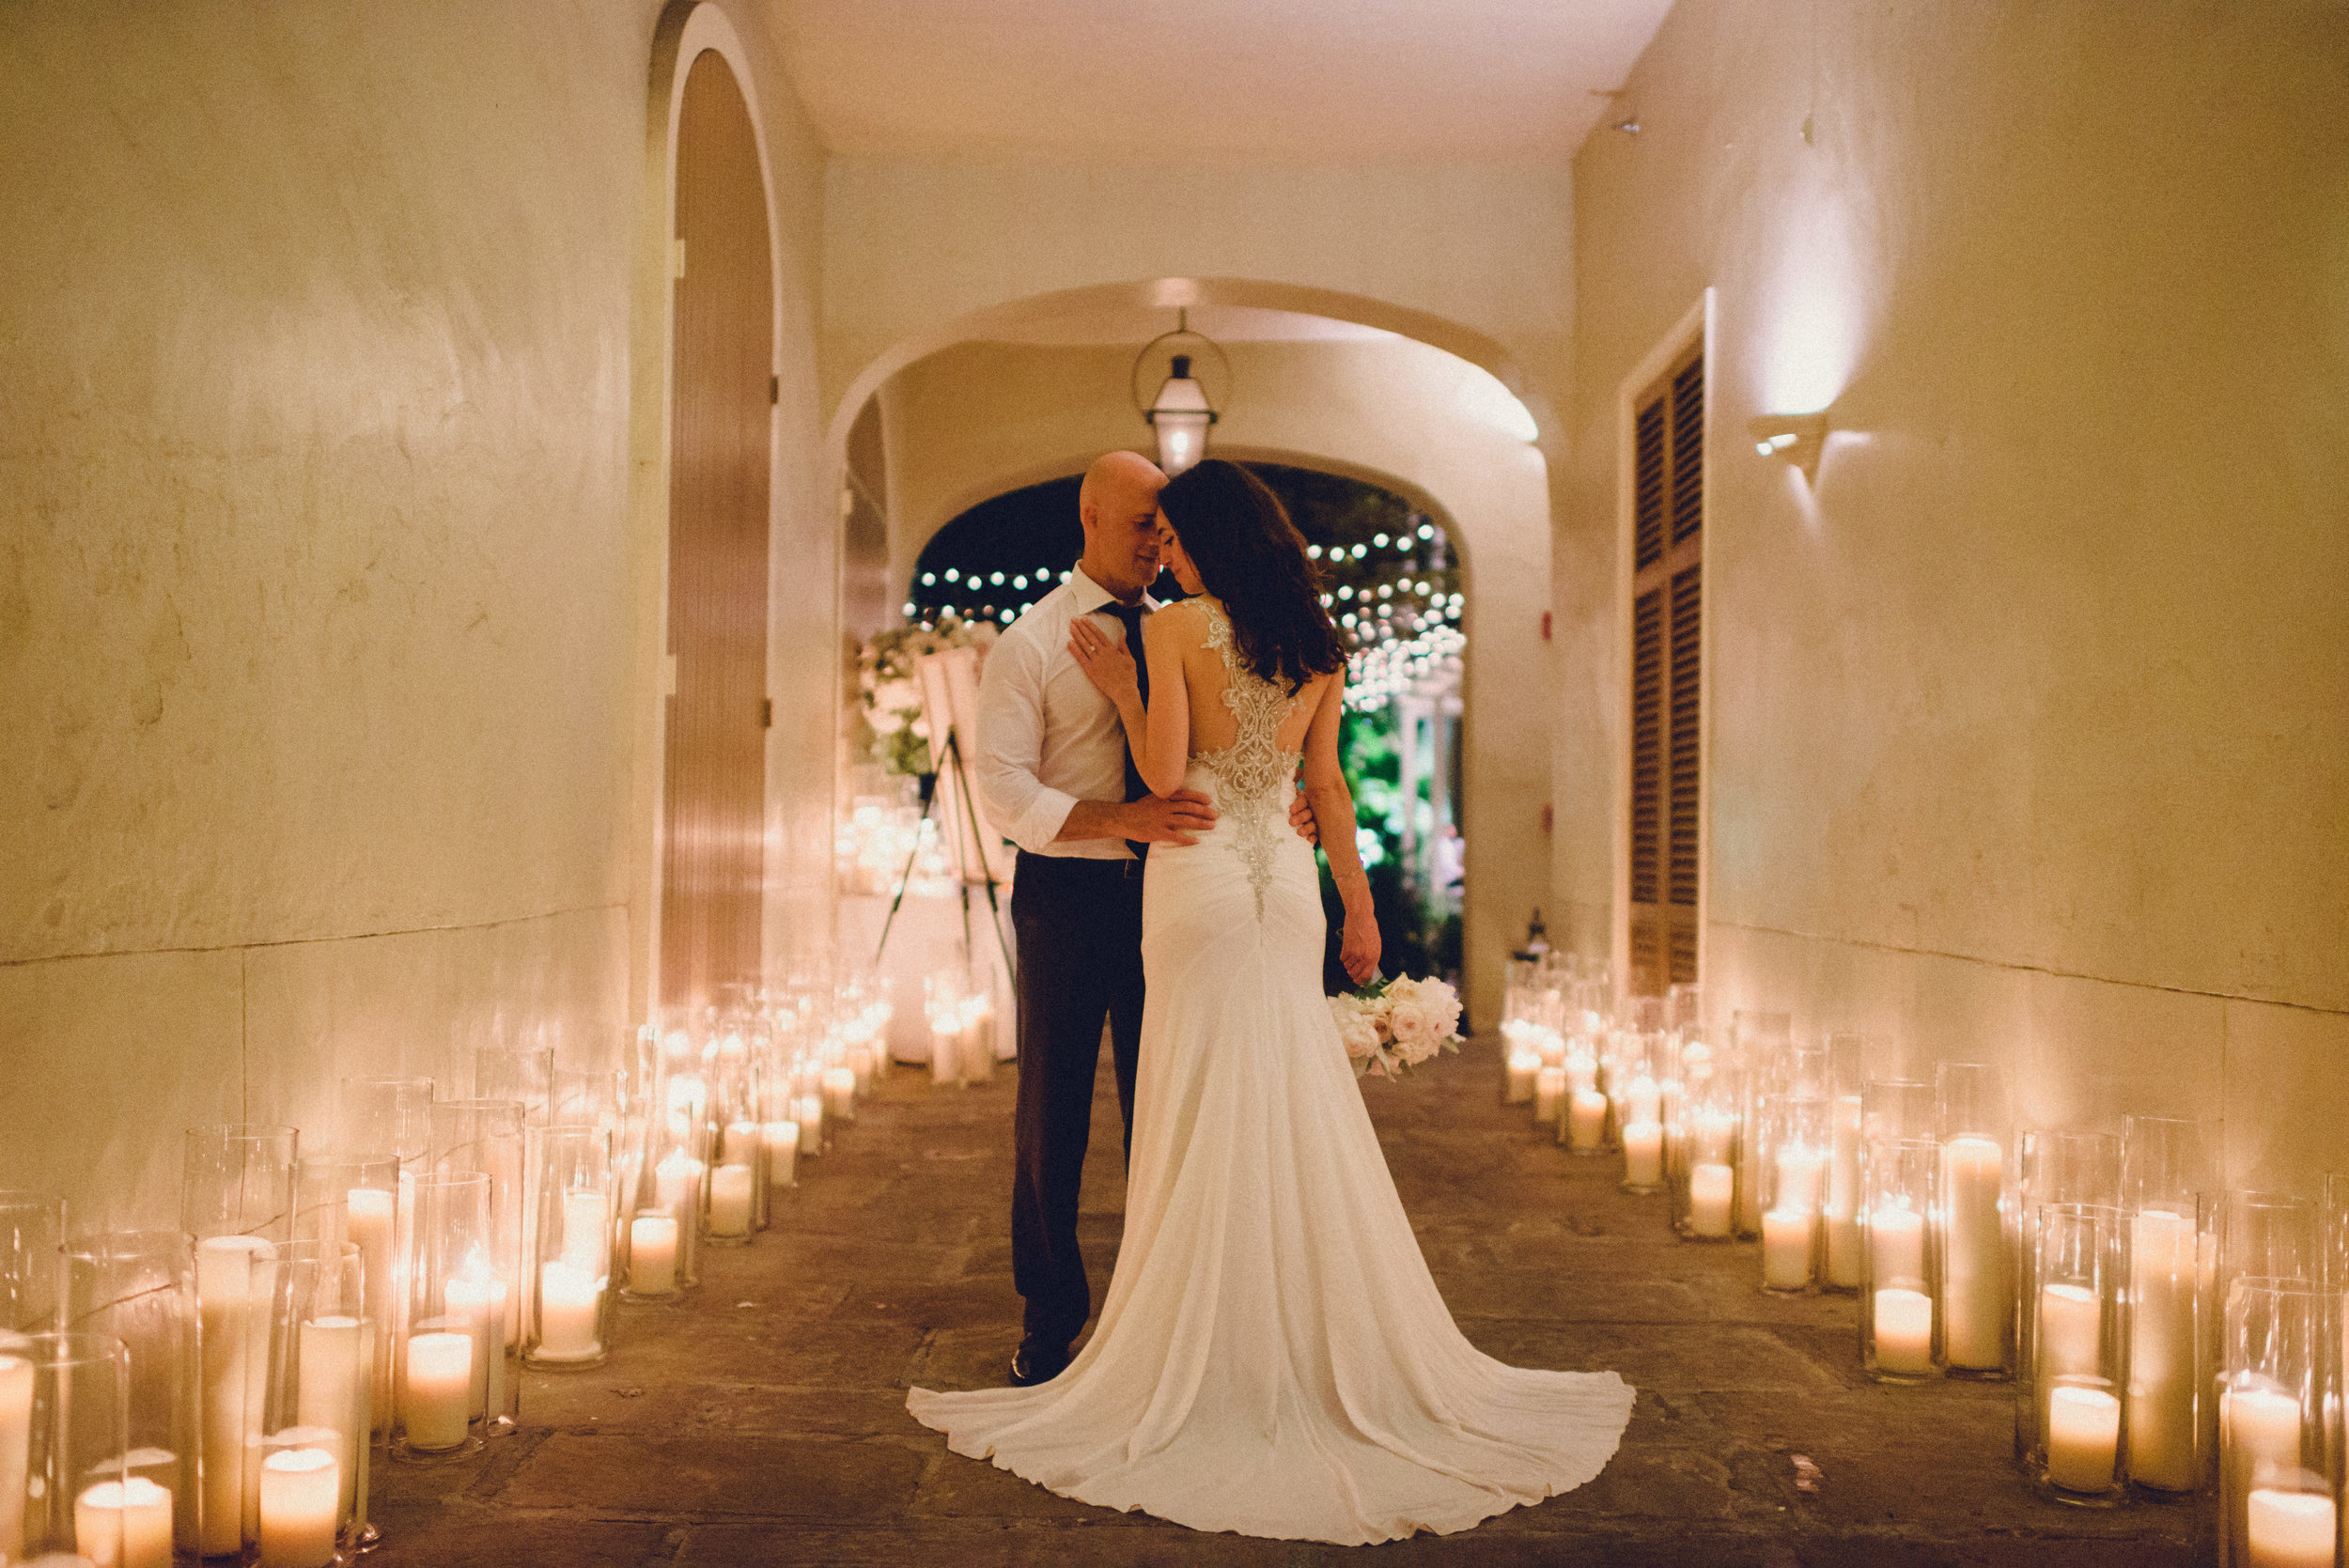 Sapphire Events | Dark Roux Photography | Montegut House | Maison Montegut | Luminous Events | Candle light inspiration | Wedding Planning Tips | What to do after the ring | Engagement Inspiration | Wedding Planning Inspiration | Best Wedding Planner in New Orleans | Essential Engagement Tips